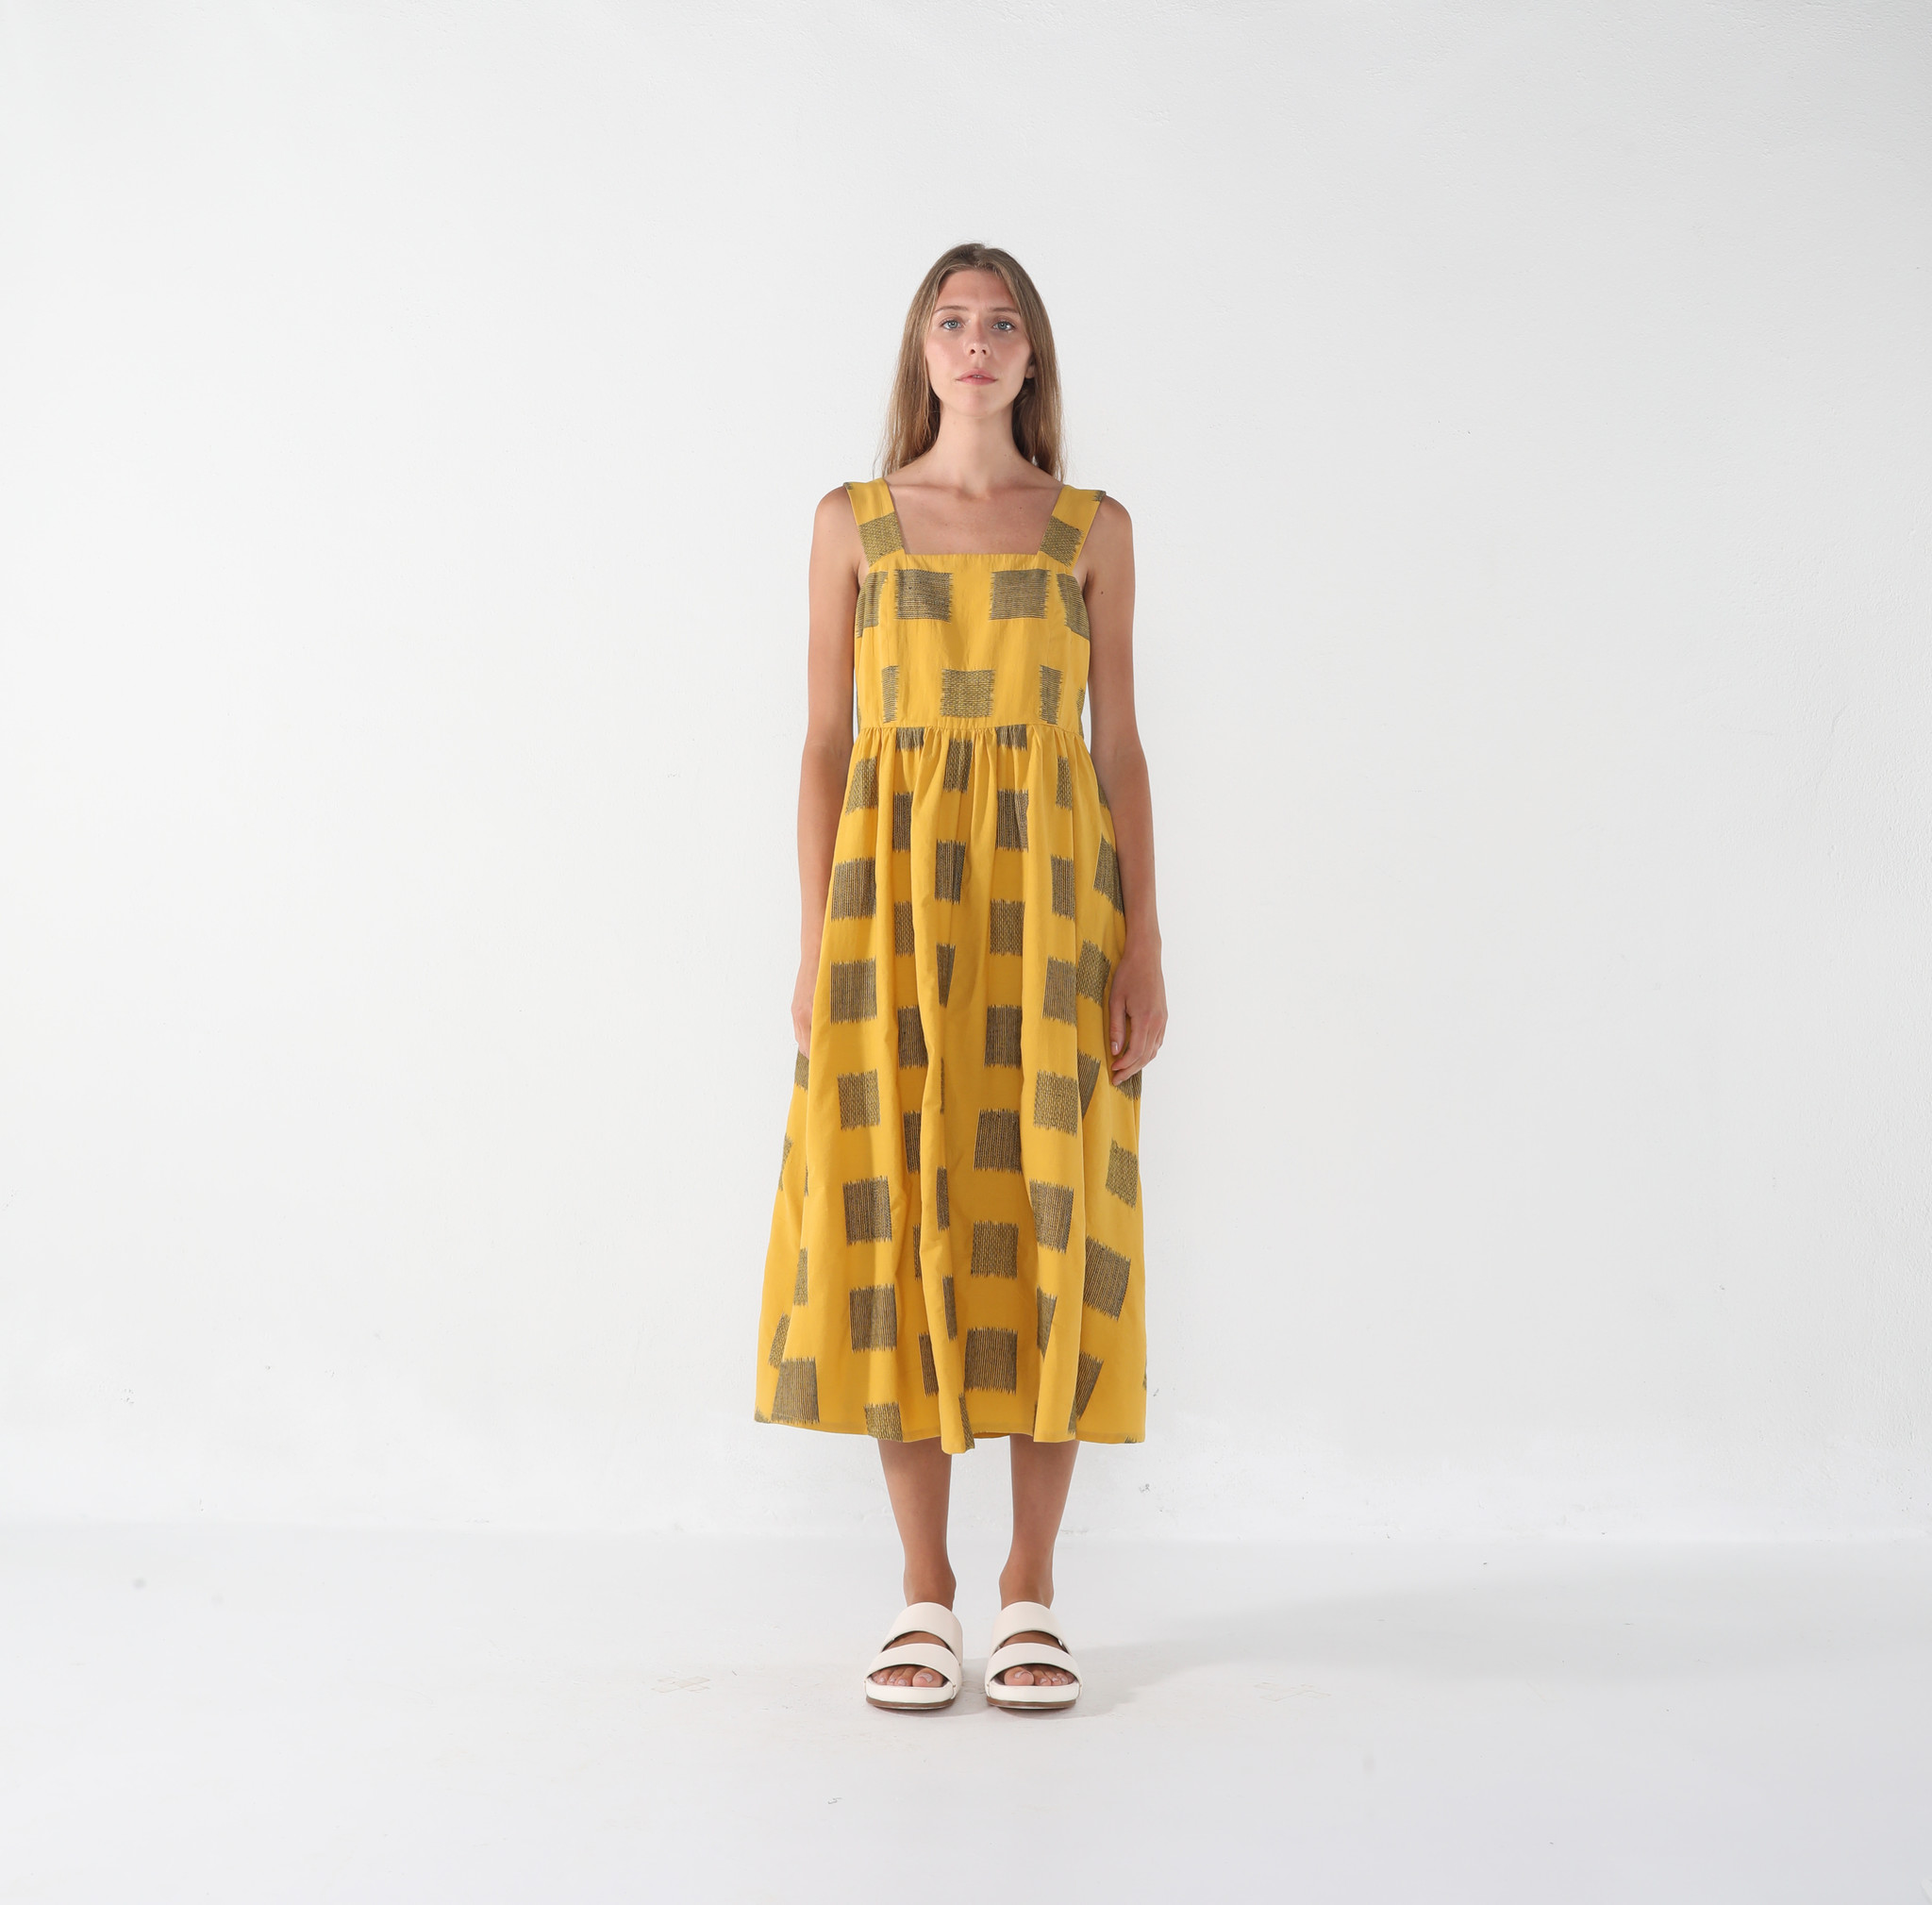 7115 by SZEKI Summer Sundress, Canary Square Print